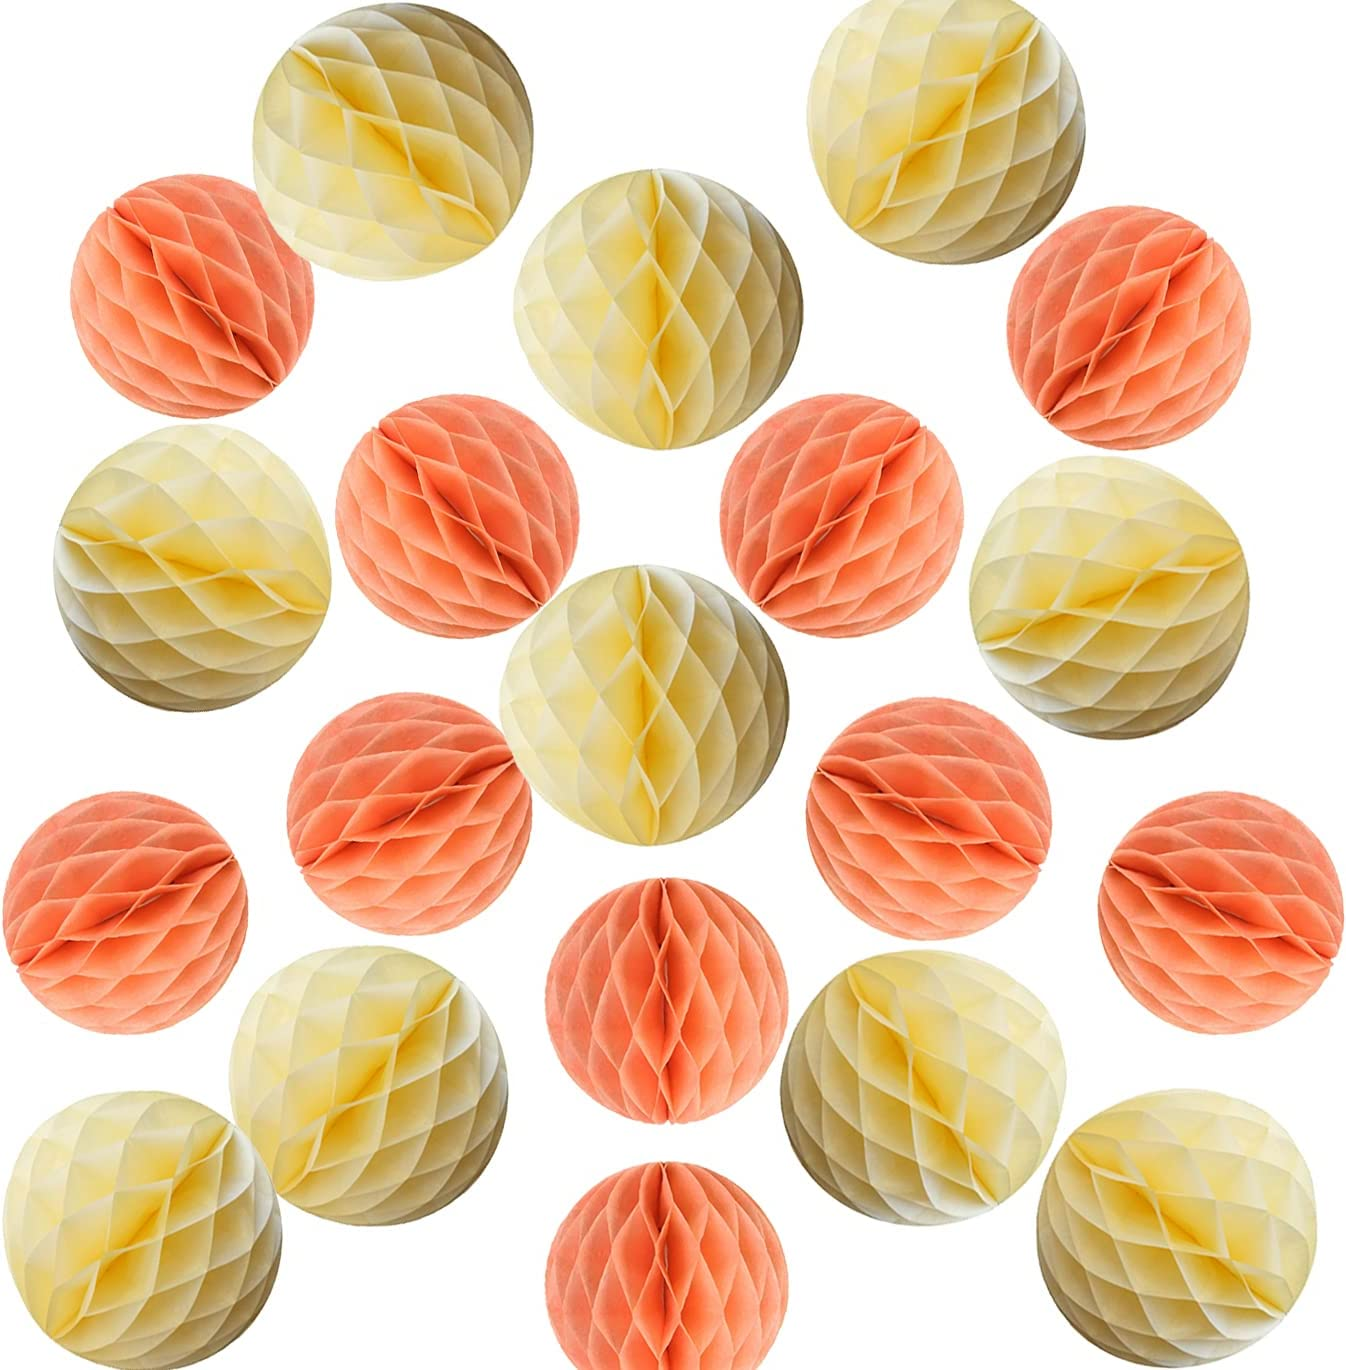 YLY's love 20pcs Pom Poms Tissue Paper Honeycomb Balls Flower Ball Wall Decor Pom Poms Decoration for Birthday Party Wedding (Peach Yellow, 20pcs-4inch,6inch)